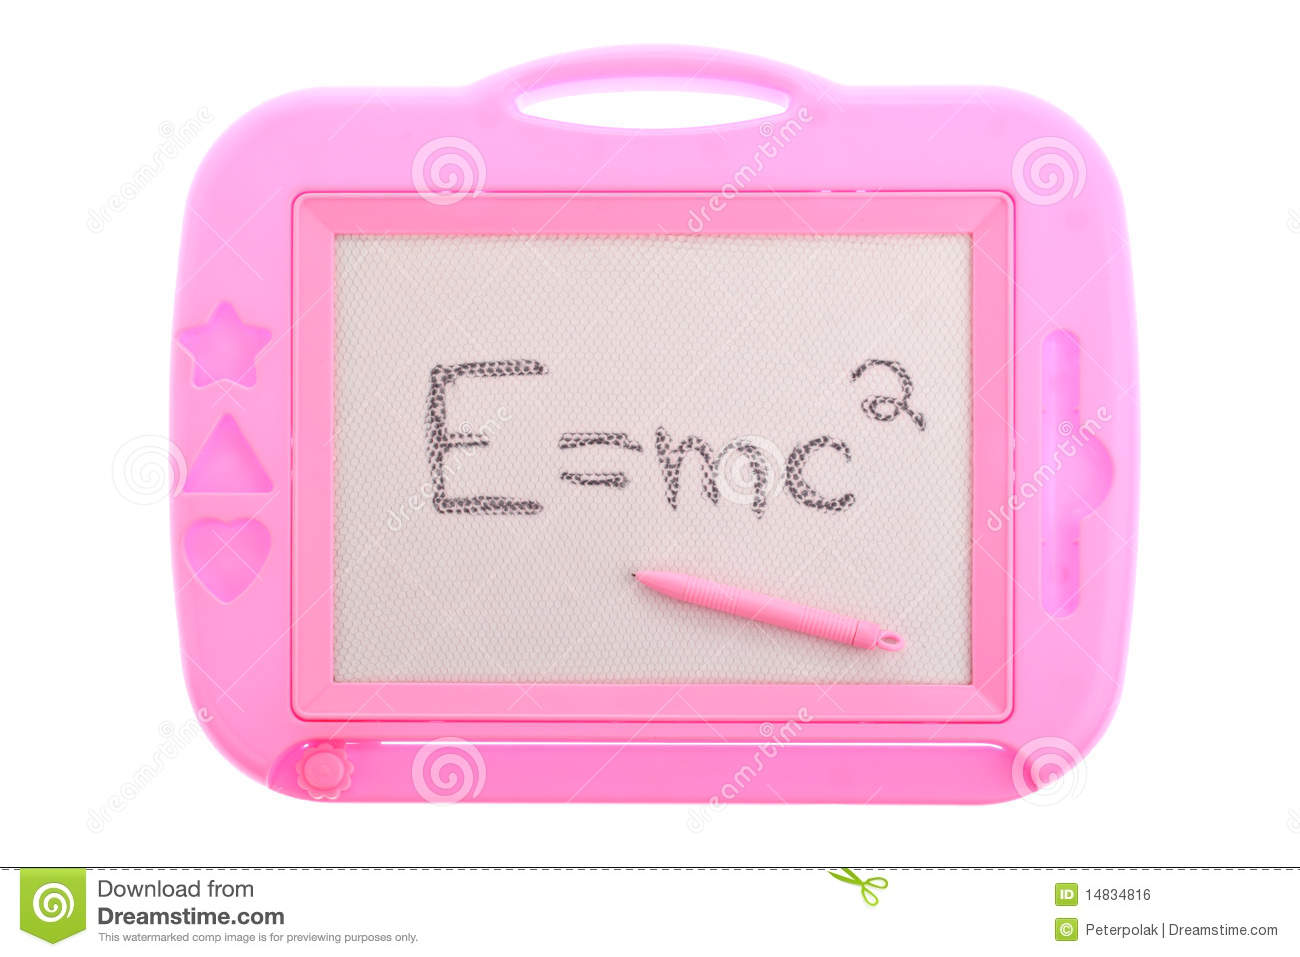 Mc2 Written On A Pink Child S Toy Magnetic Learning Board Isolated